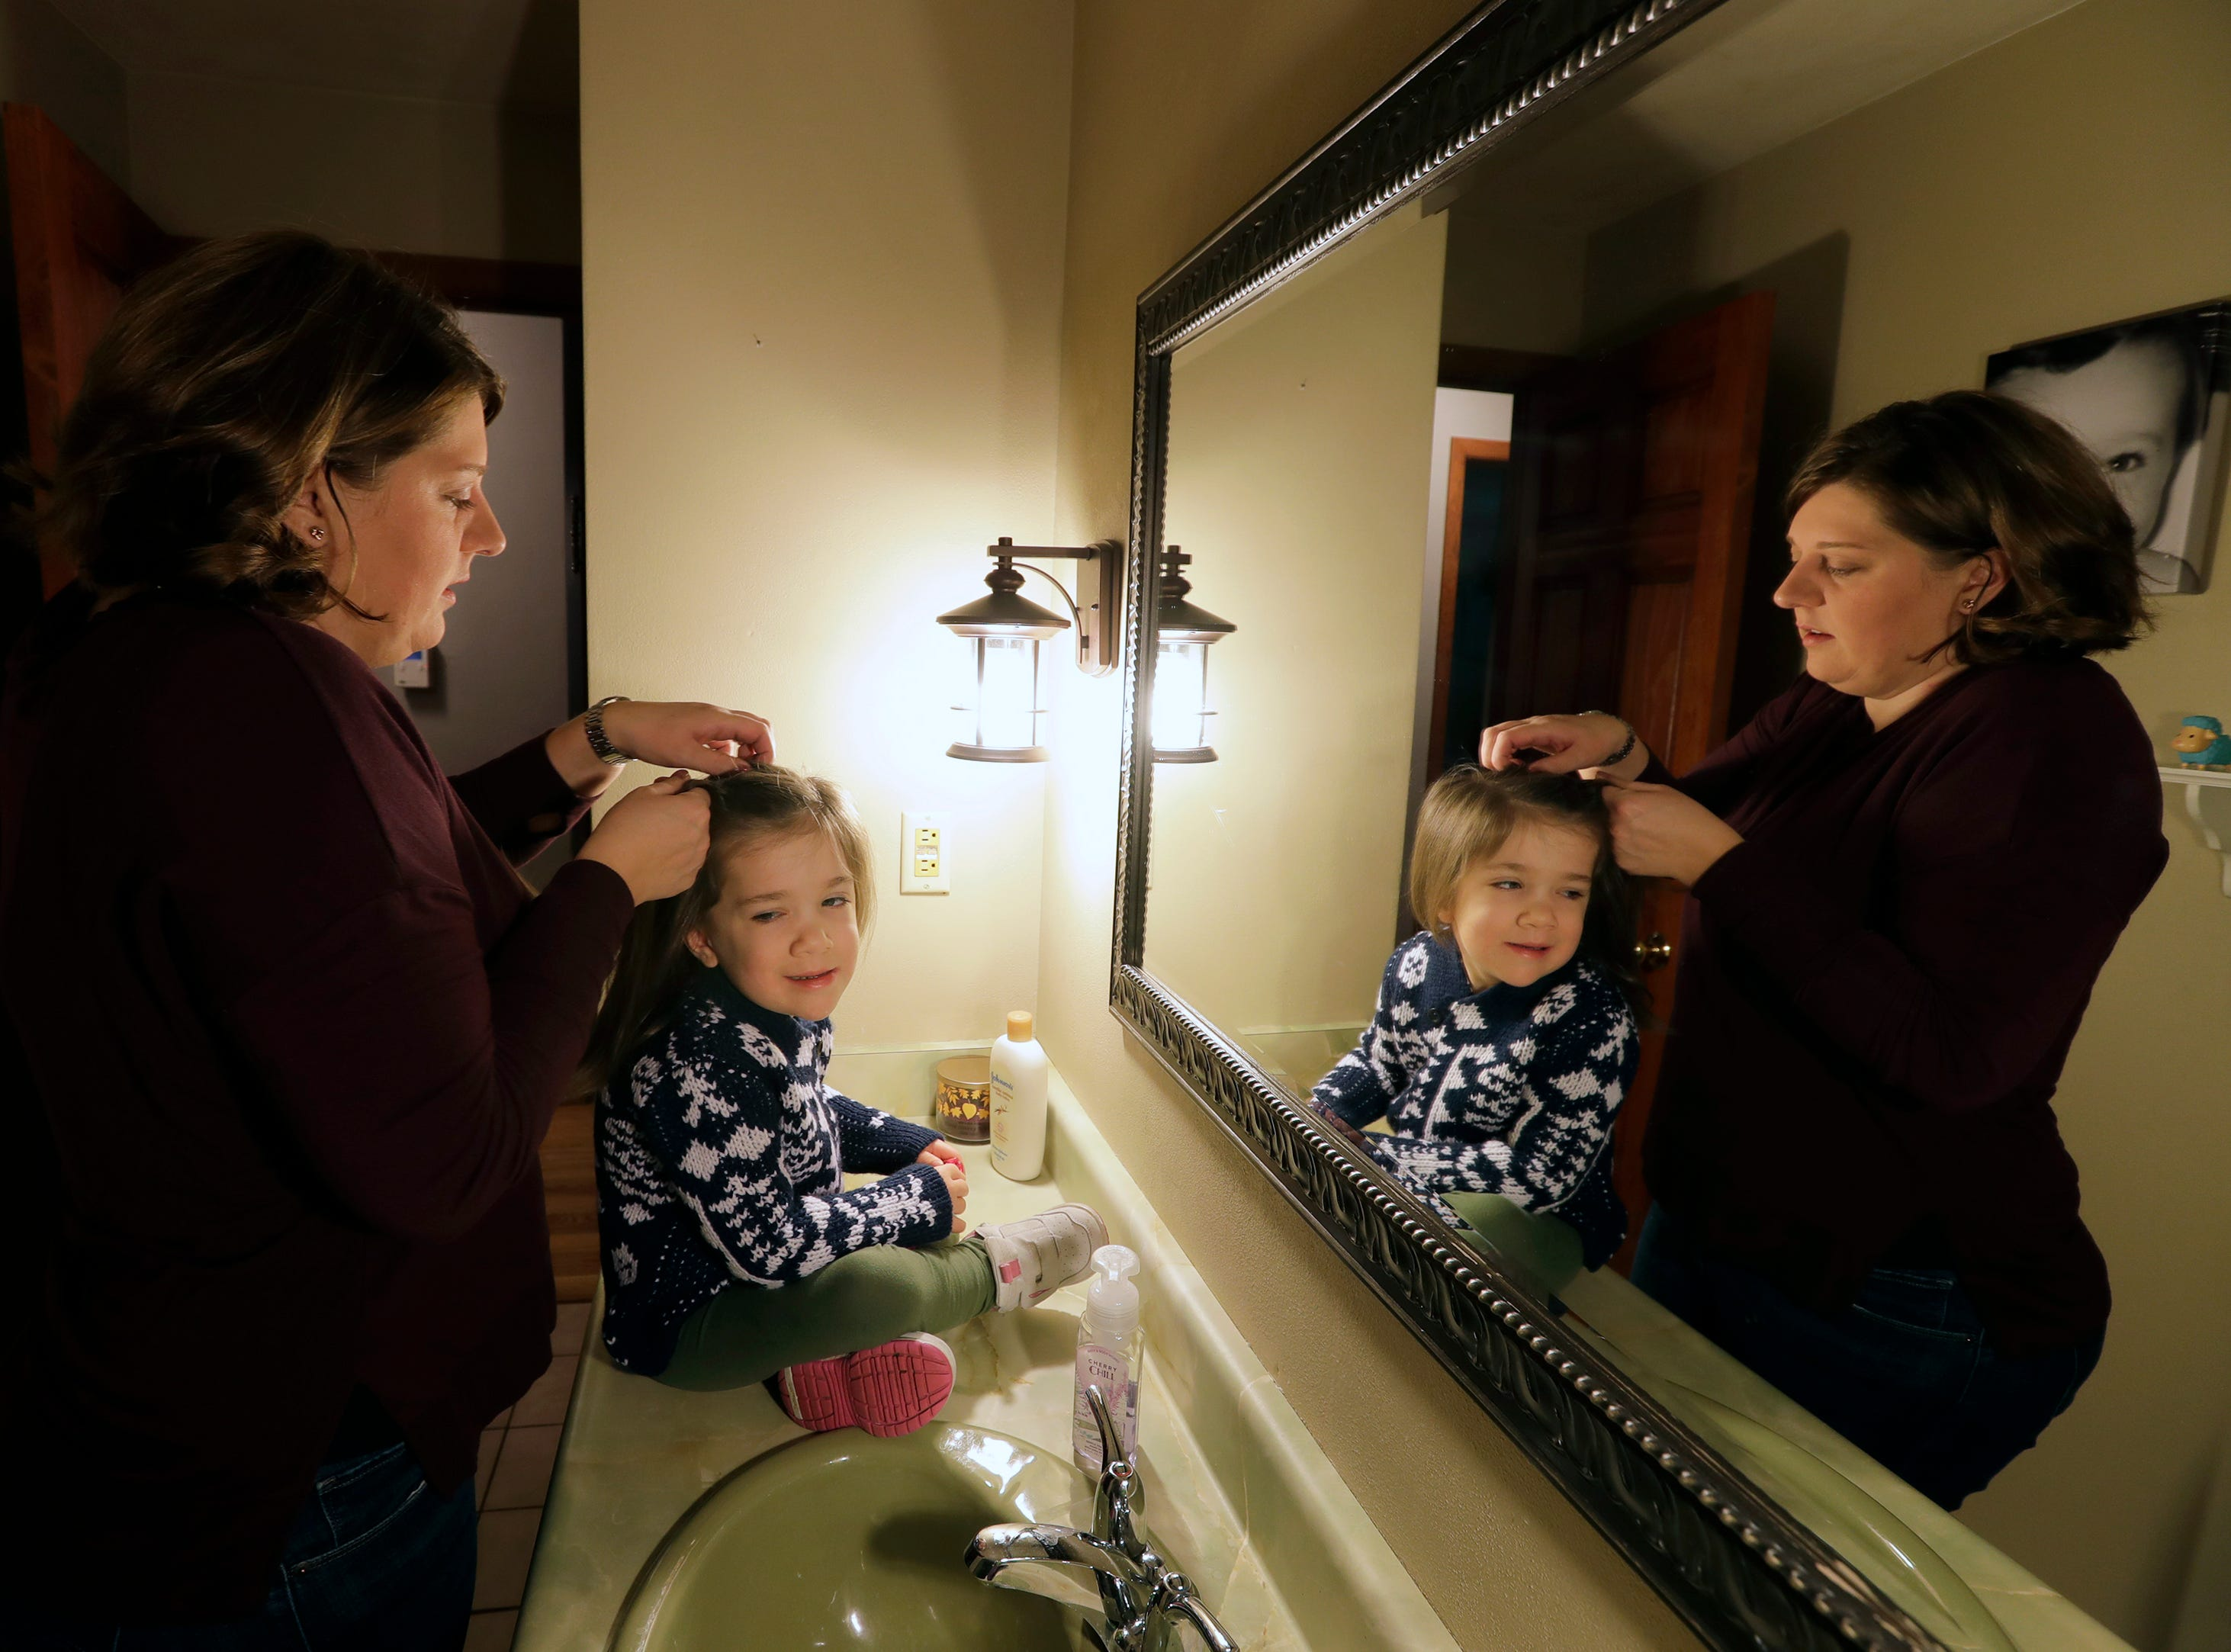 Avi Brennen, 4, gets her hair done by her mother Nina Maroszek Brennan as they prepare for her first day of school Monday, January 7, 2019, at their home in Clayton, Wis. Avi is attending Washington School of Early Learning. 